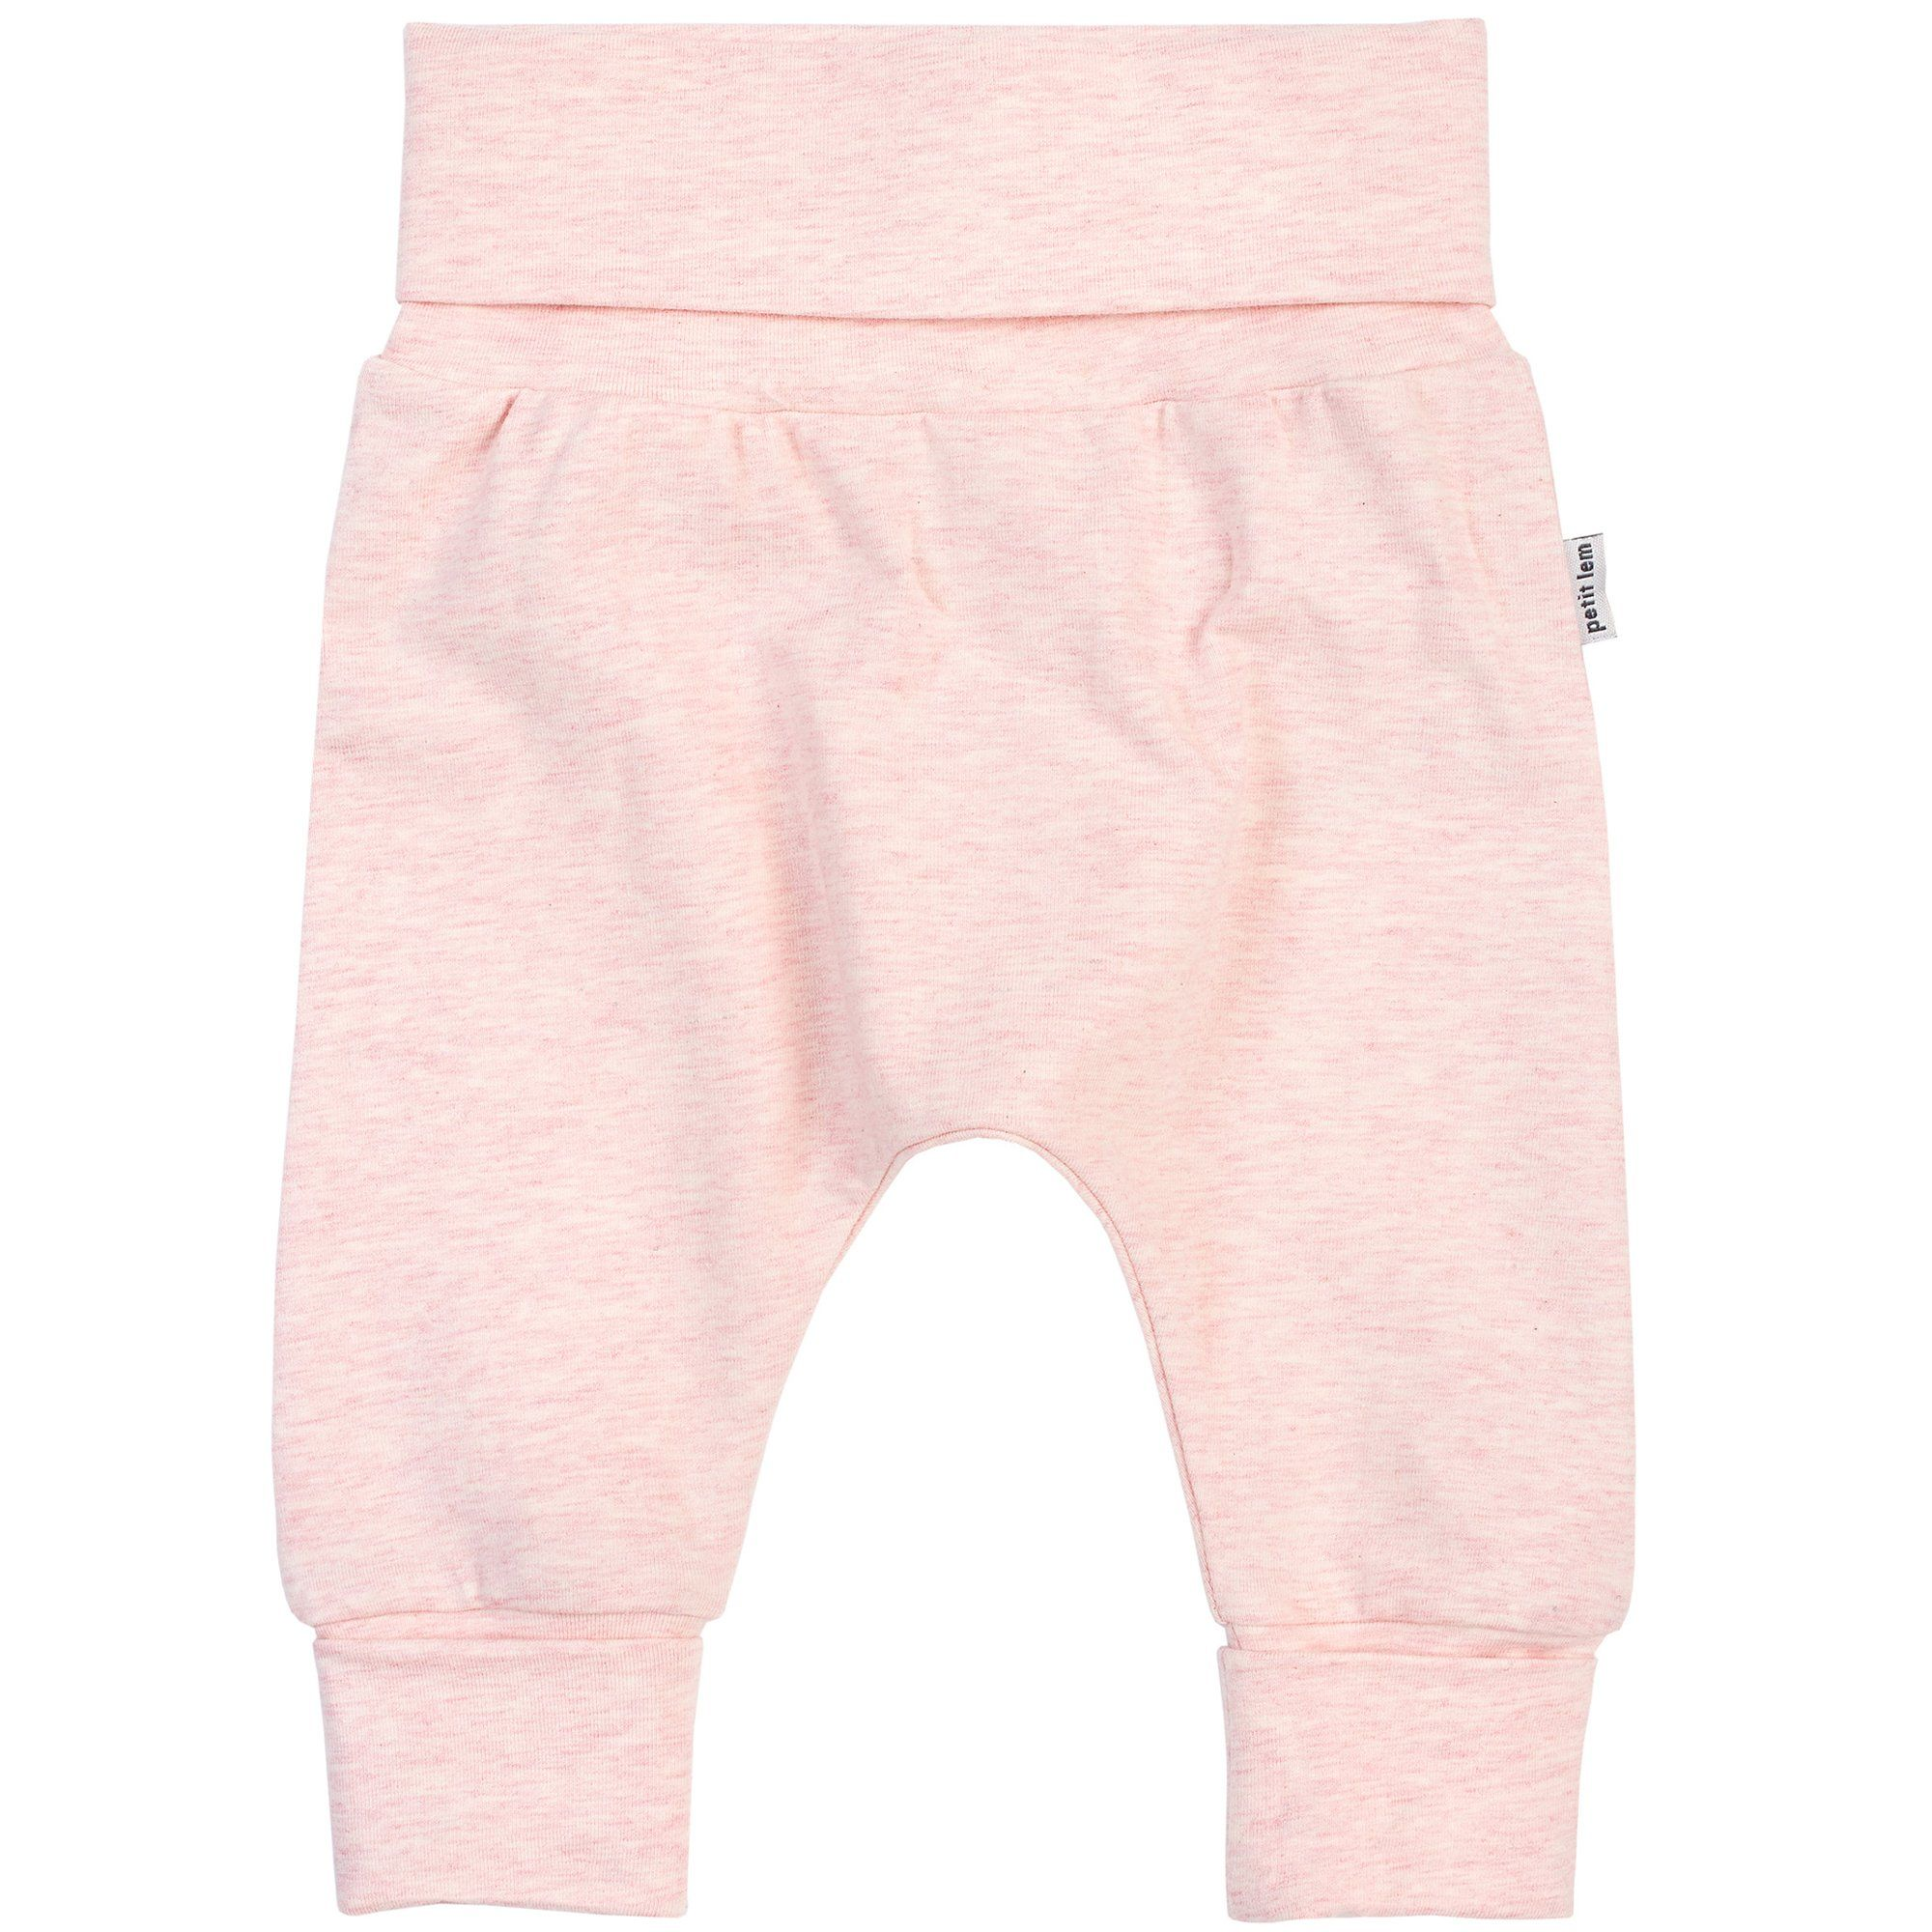 Pink Pants (Organic Cotton) – 12-24 MONTHS